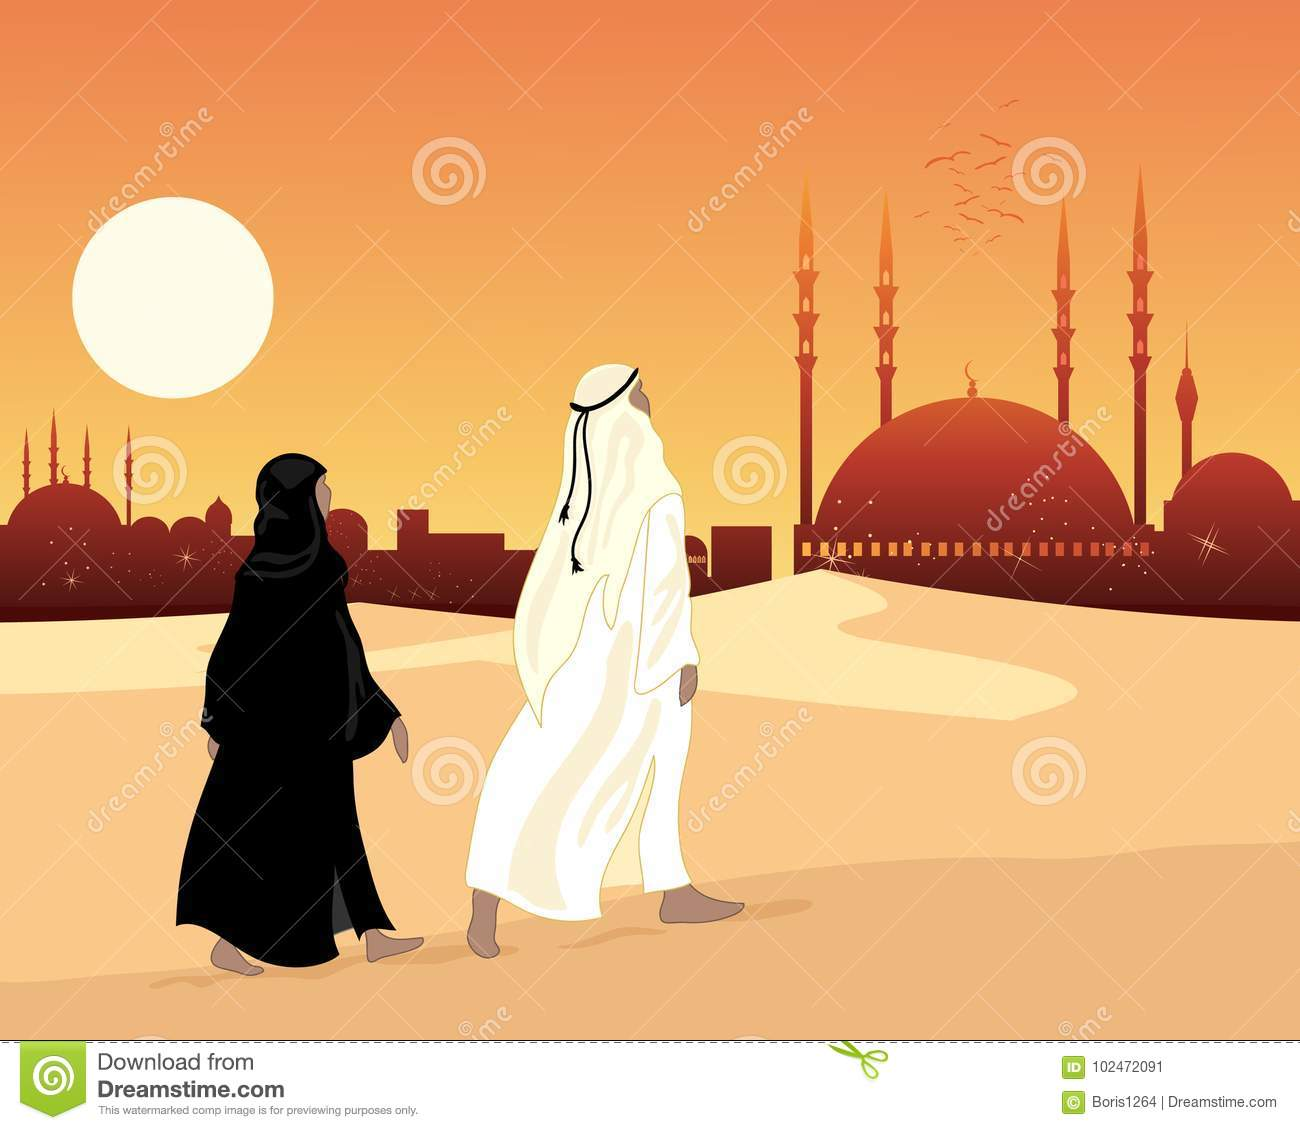 Muslim devotees walking across sand to a Muslim city with mosque at sunset